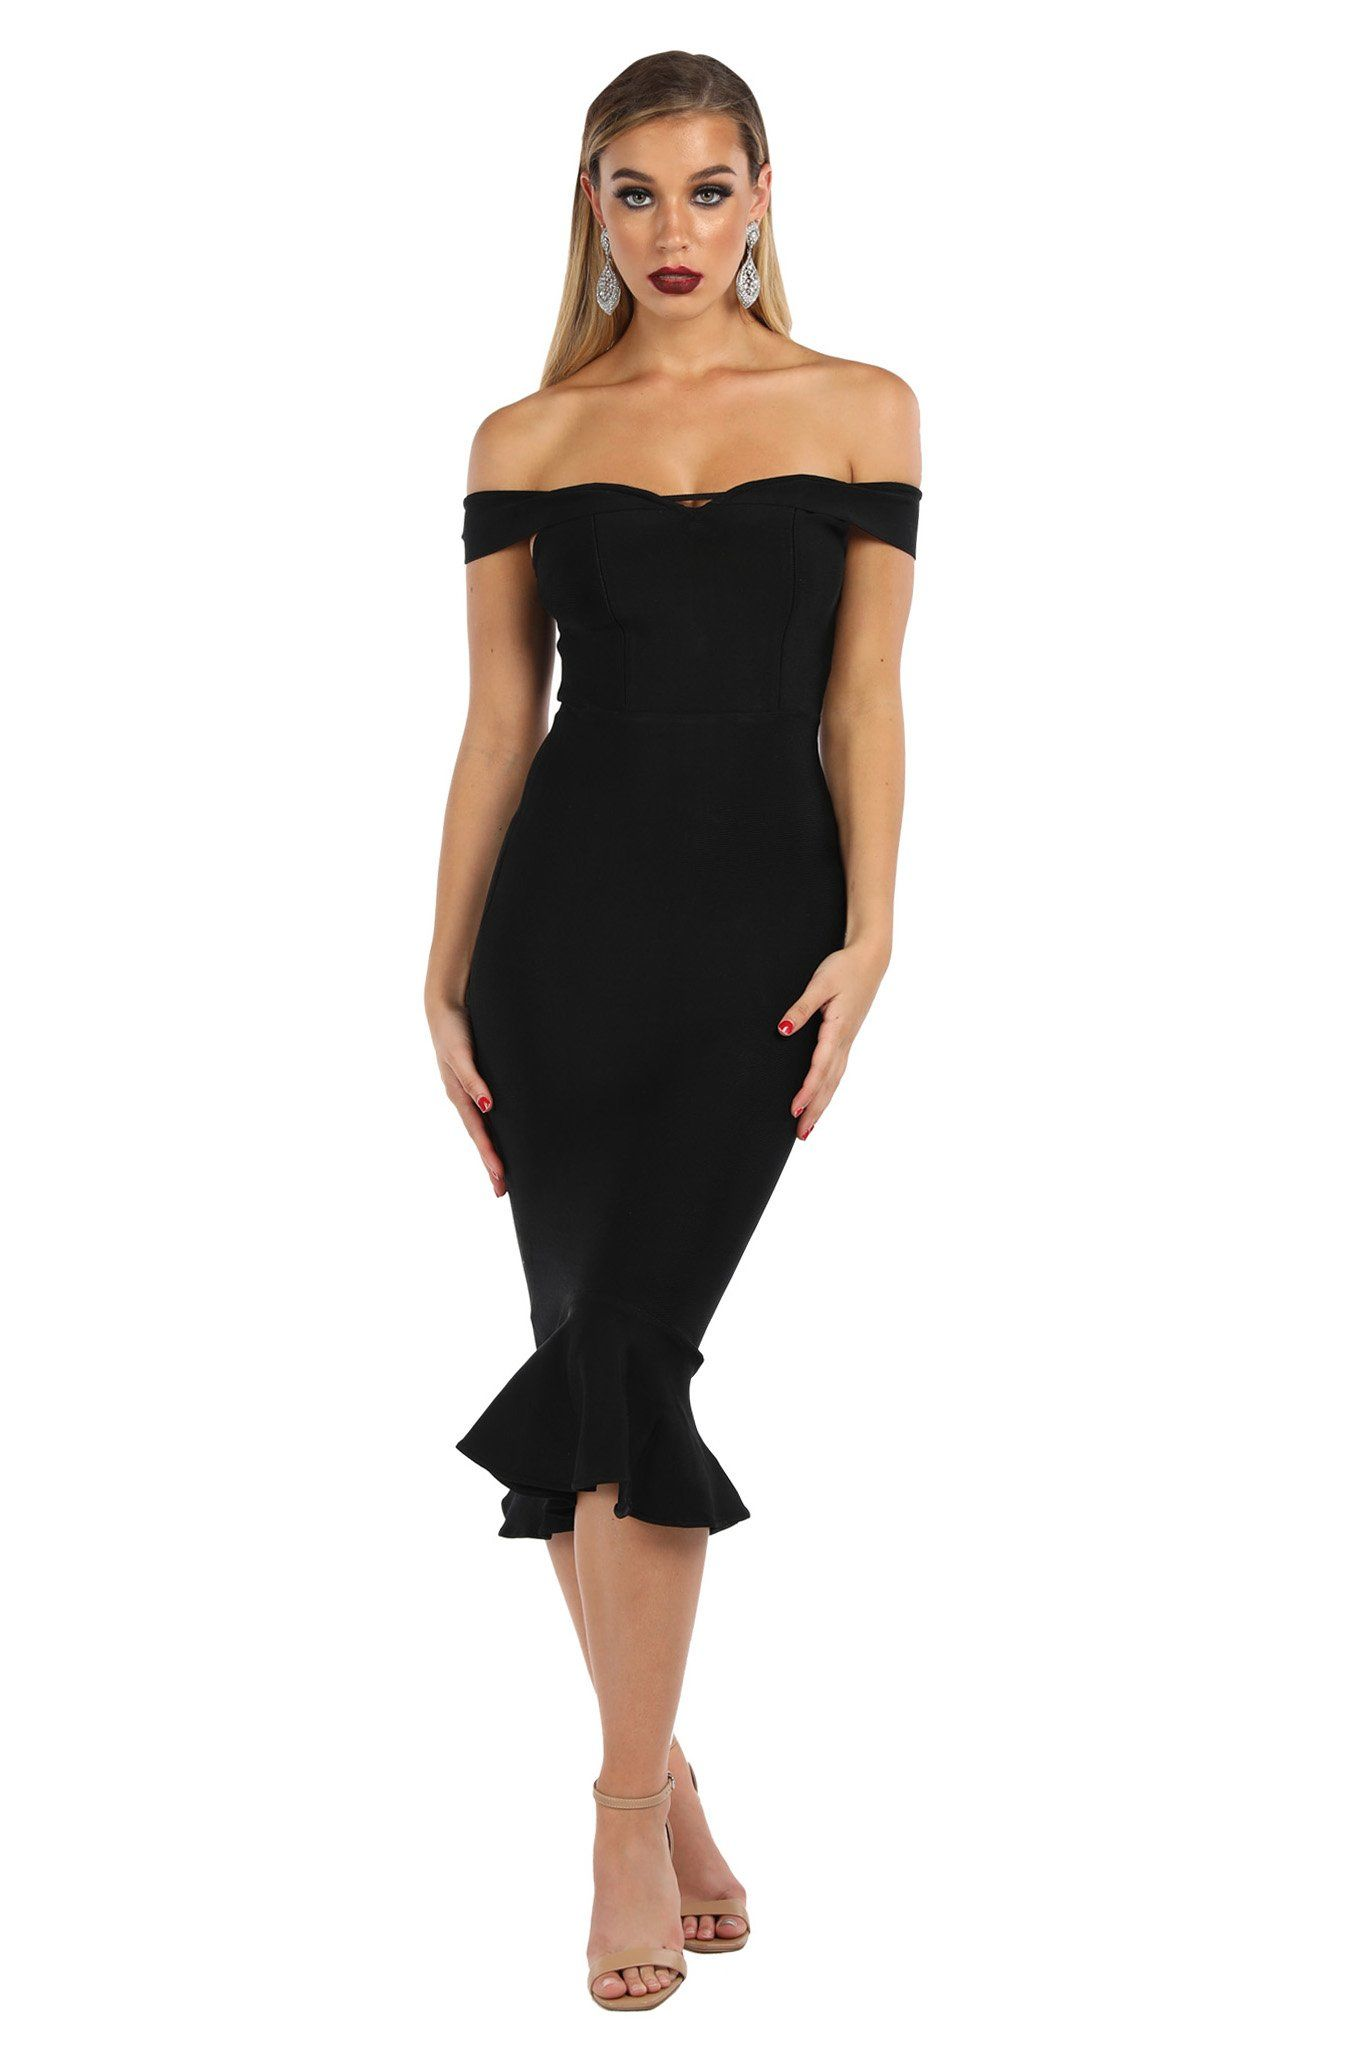 Black off-the-shoulder below-knee length bandage dress with cap sleeves and peplum hem